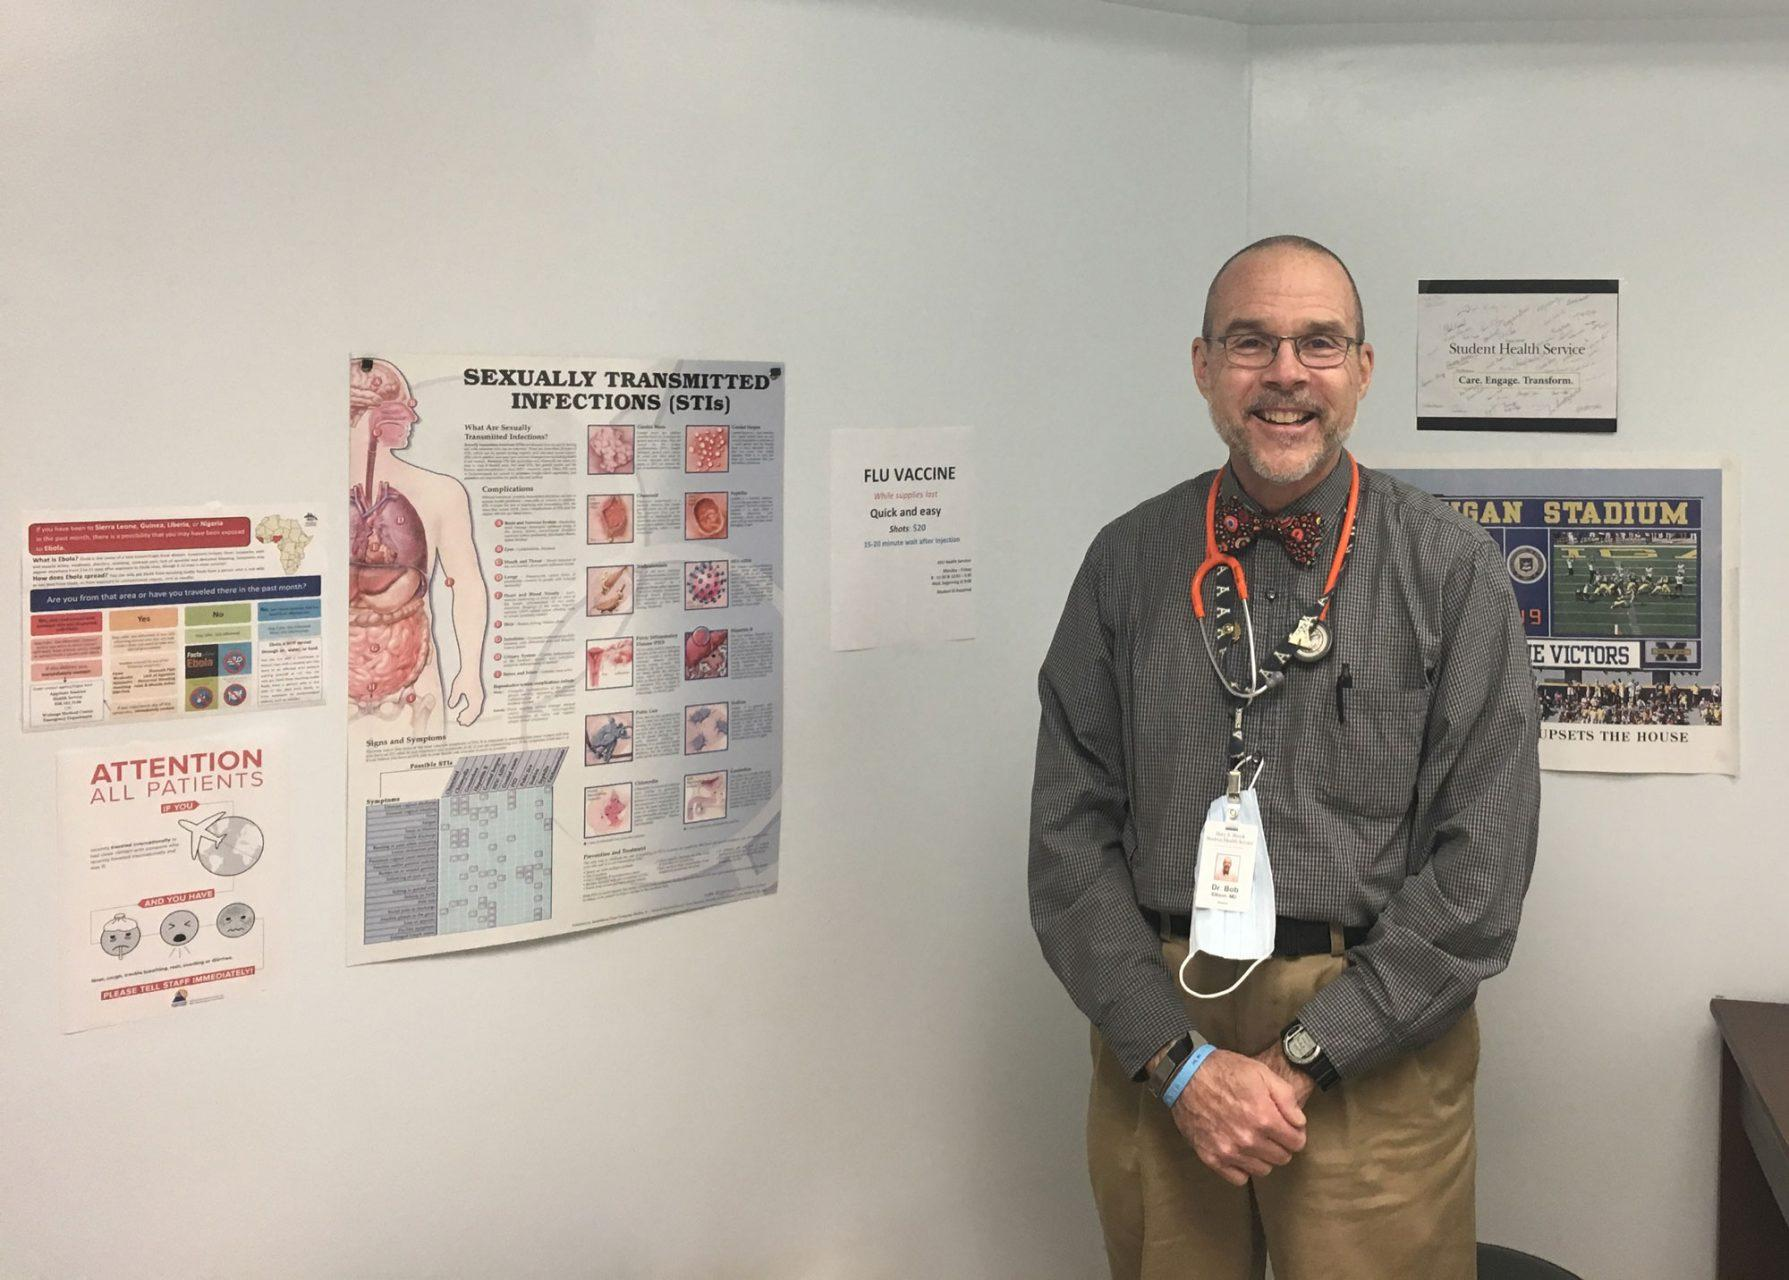 Health Services director steps down, looks forward to fresh ideas